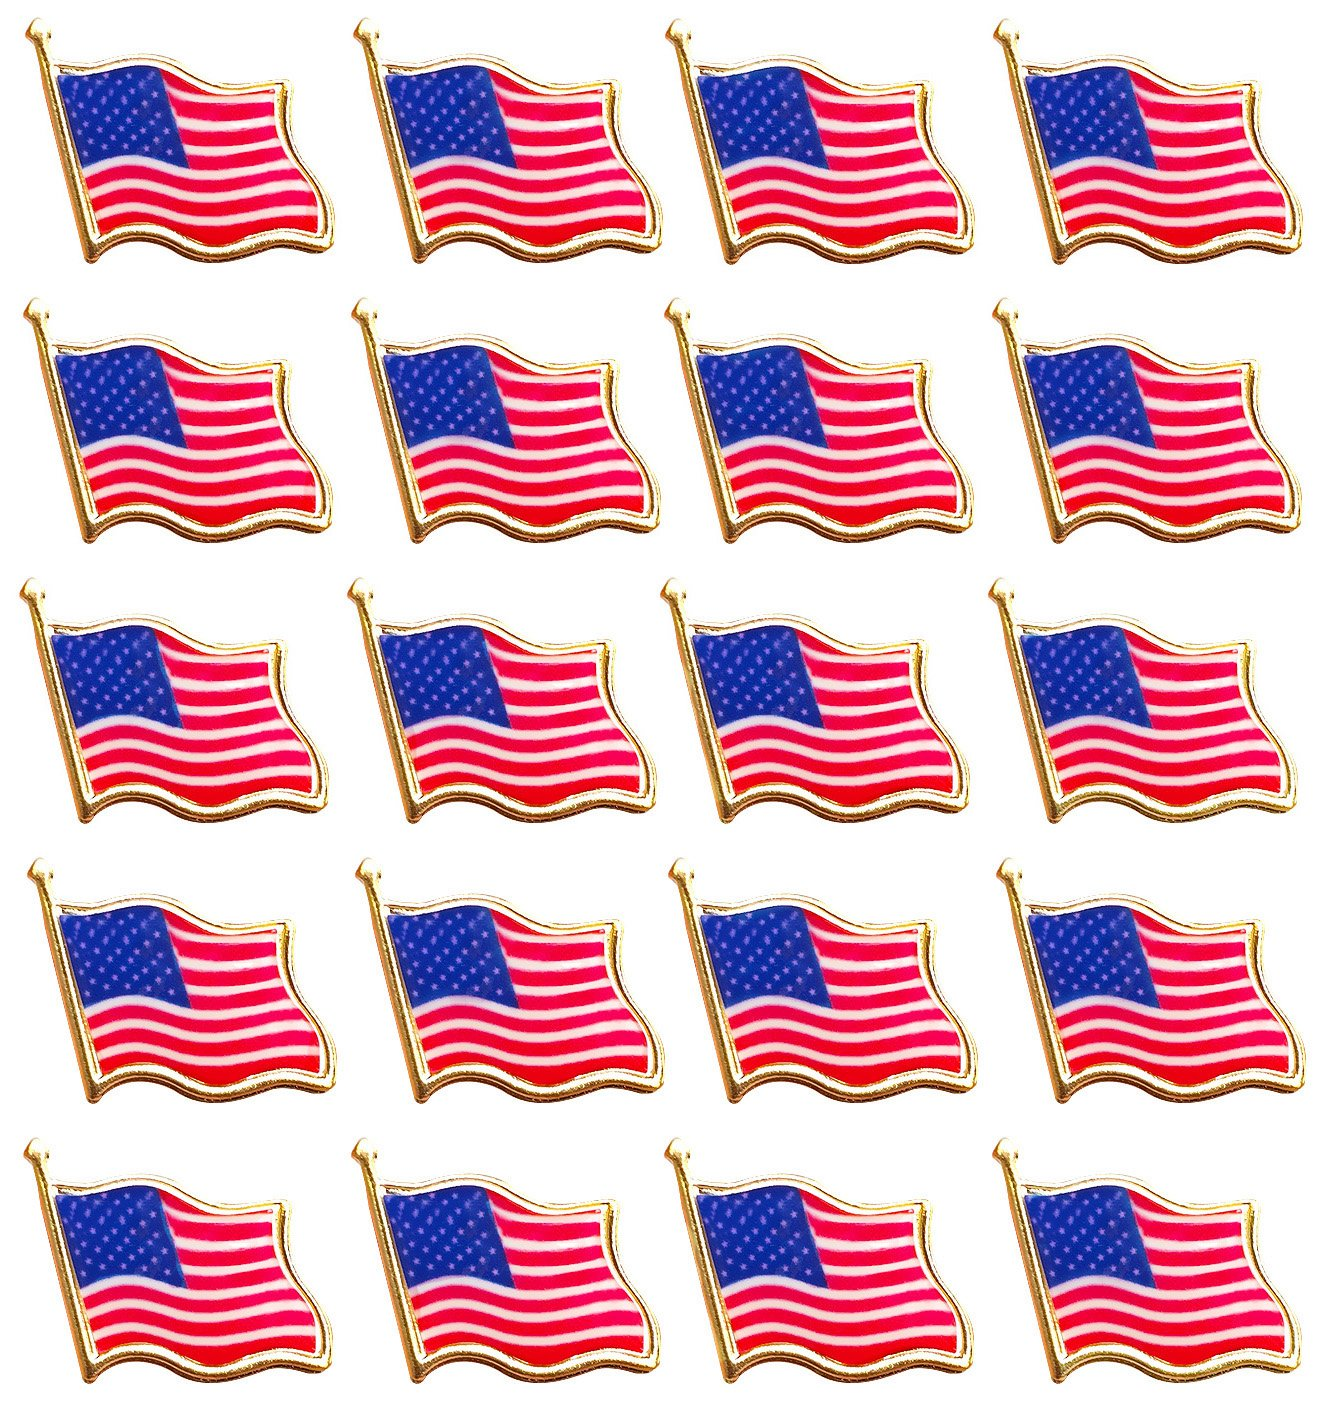 Bassion 20 PCS American Flag Lapel Pin United States USA Waving Flag Pins PRO-048-1